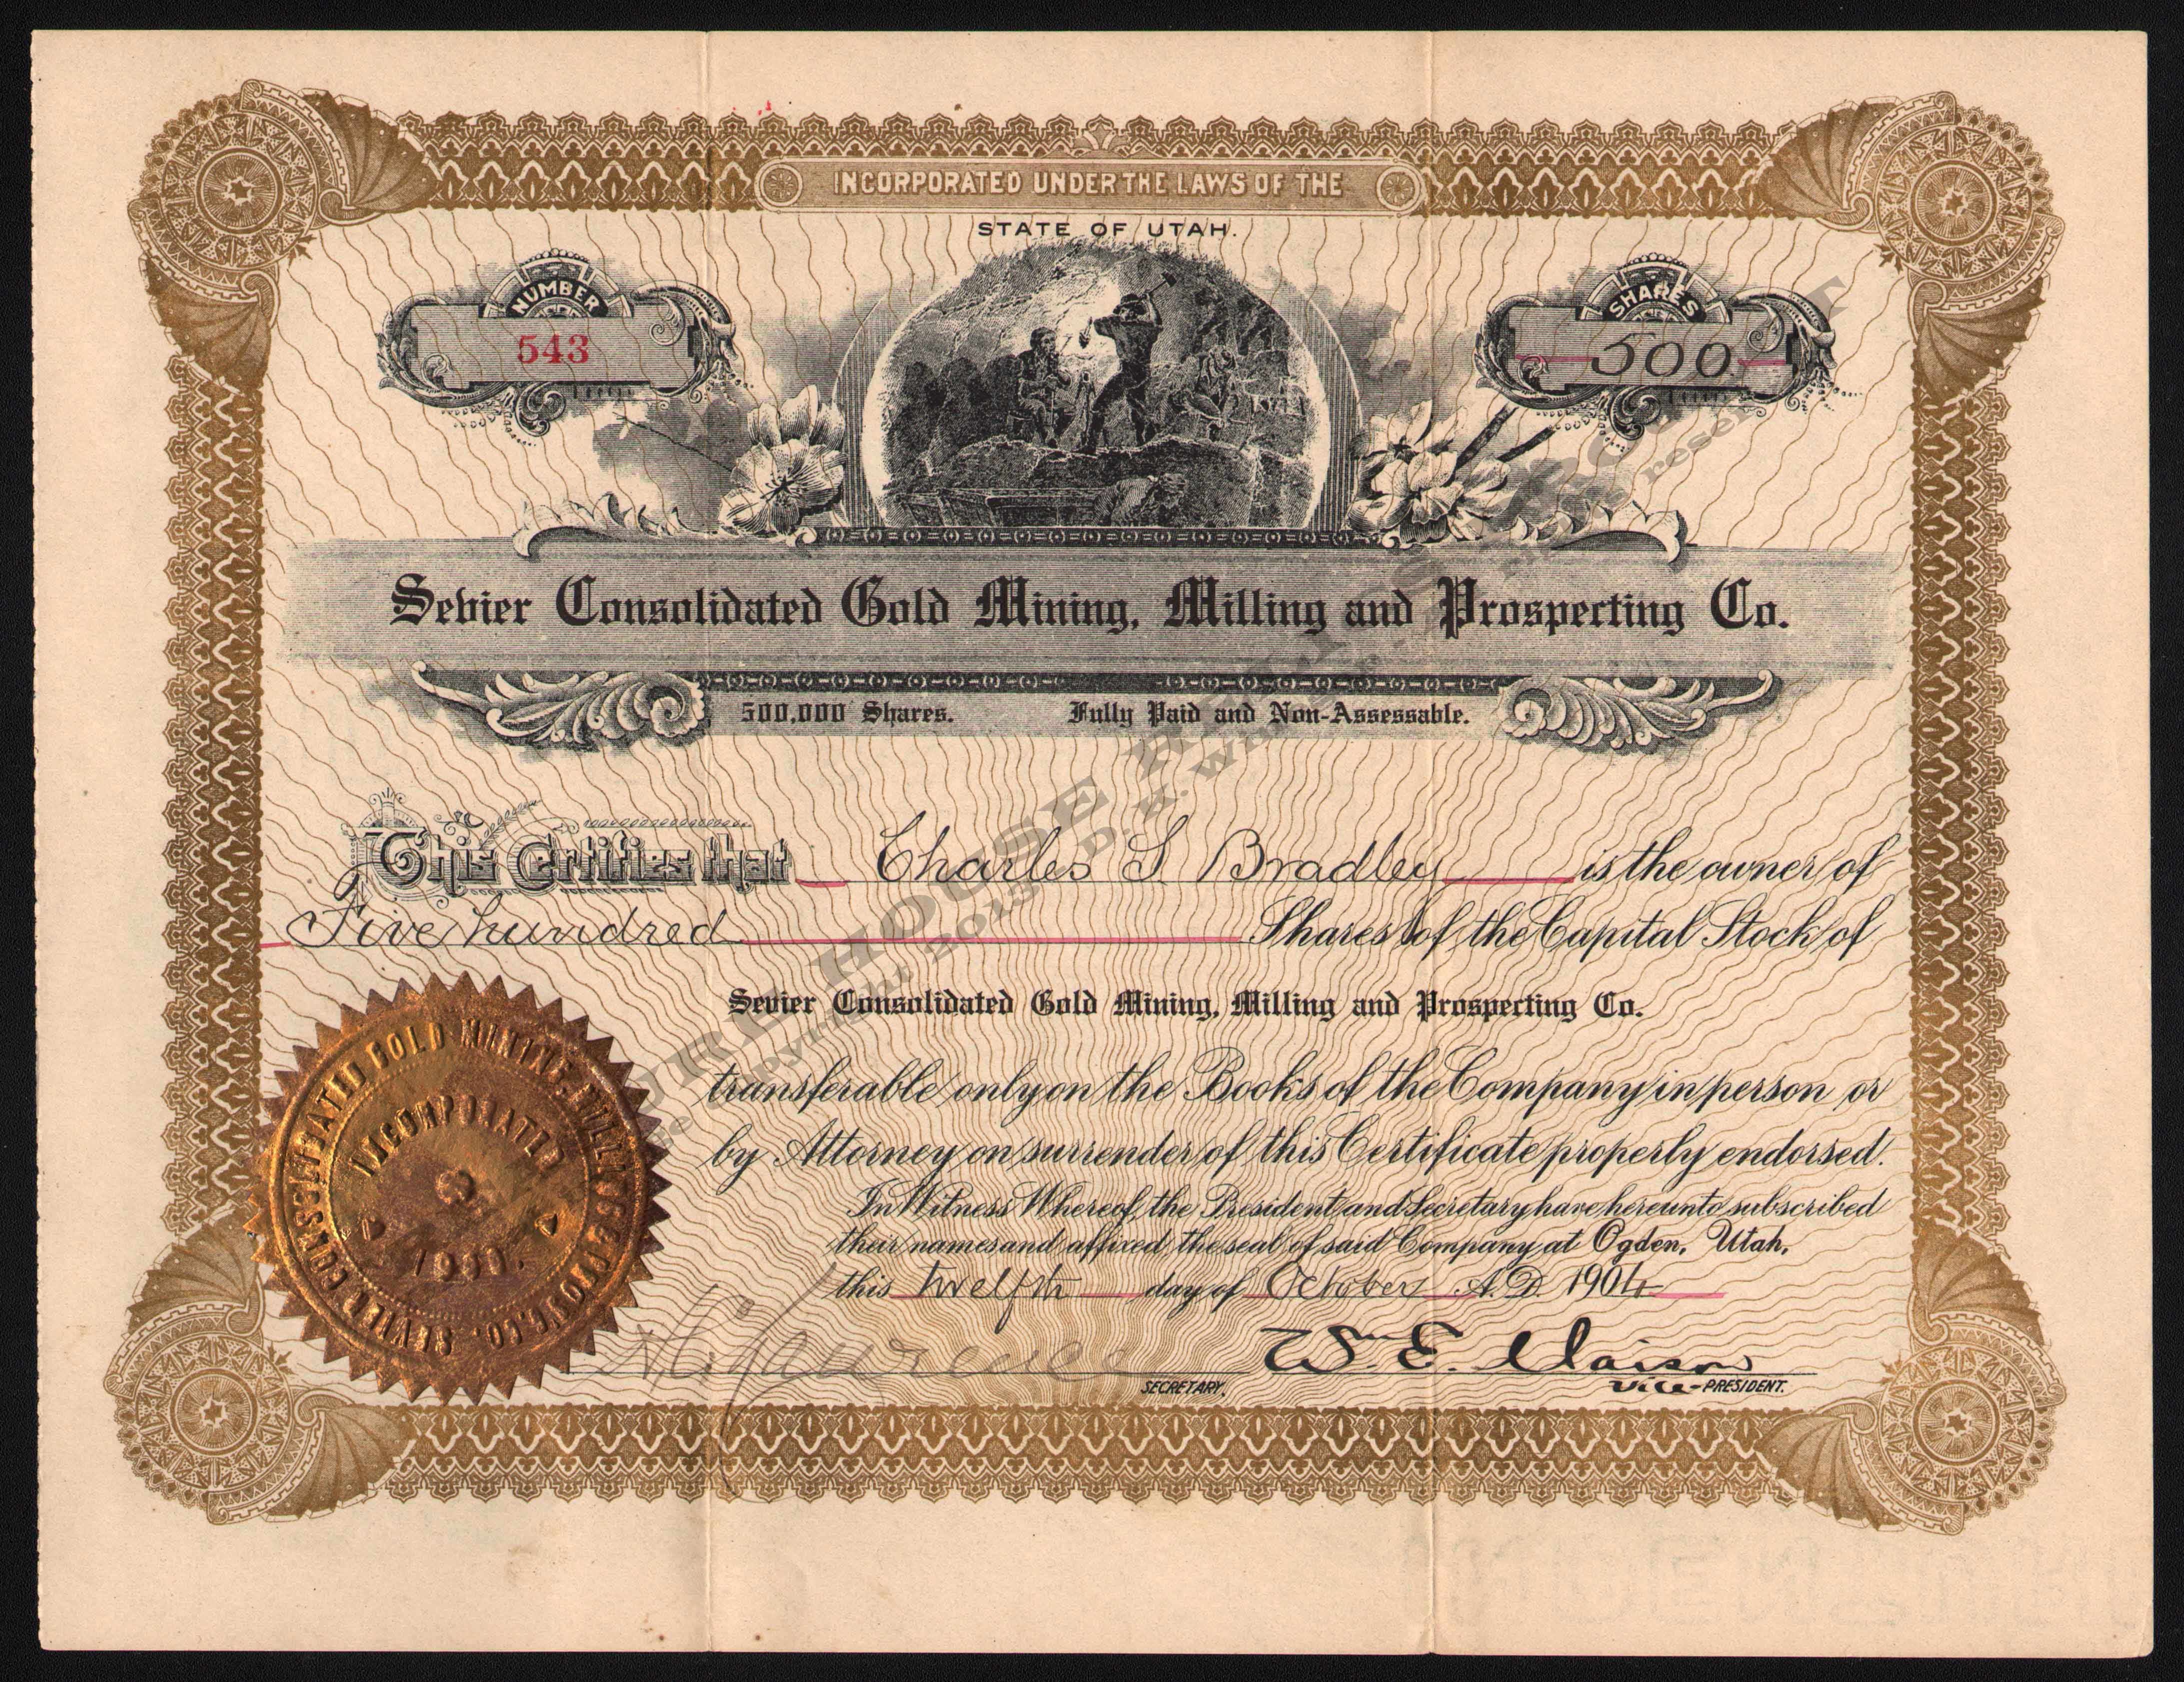 LETTERHEAD/SEVIER_CONSOLIDATED_GOLD_MINING_MILLING_PROSPECTING_COMPANY_543_1904_GP_400_CROP_EMBOSS.jpg